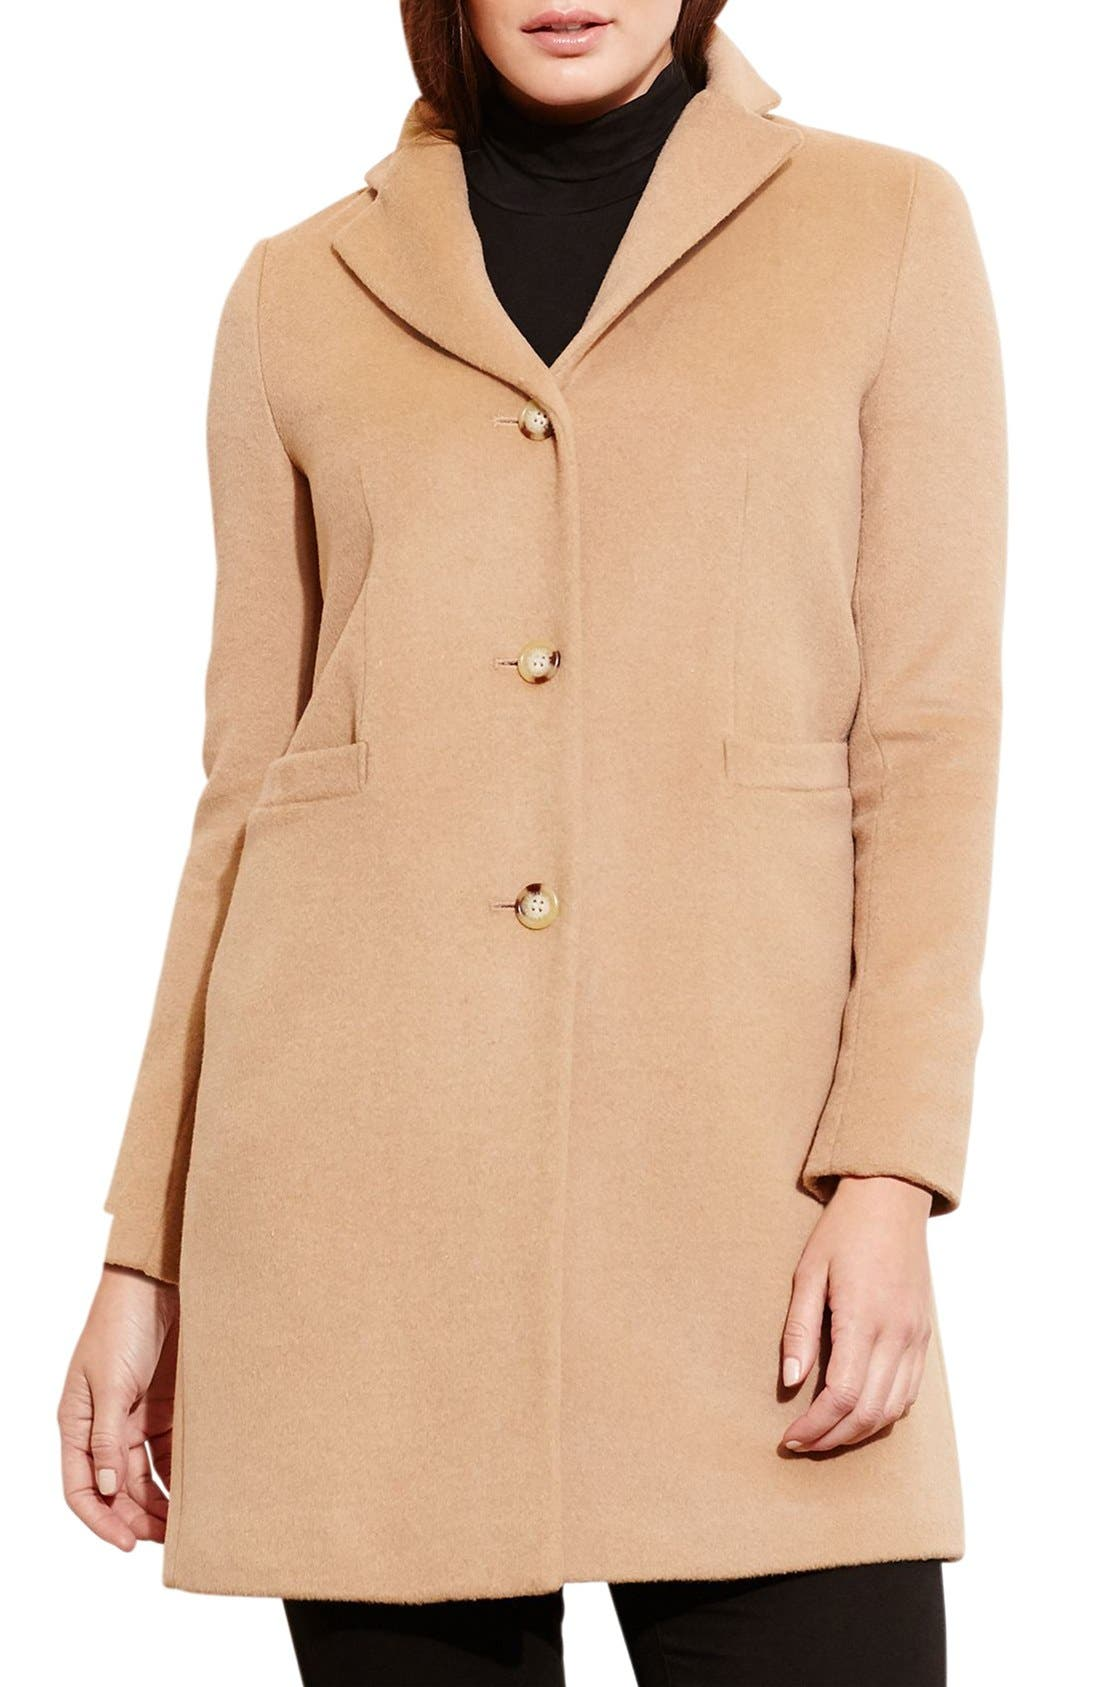 Alternate Image 1 Selected - Lauren Ralph Lauren Wool Blend Reefer Coat (Plus Size)